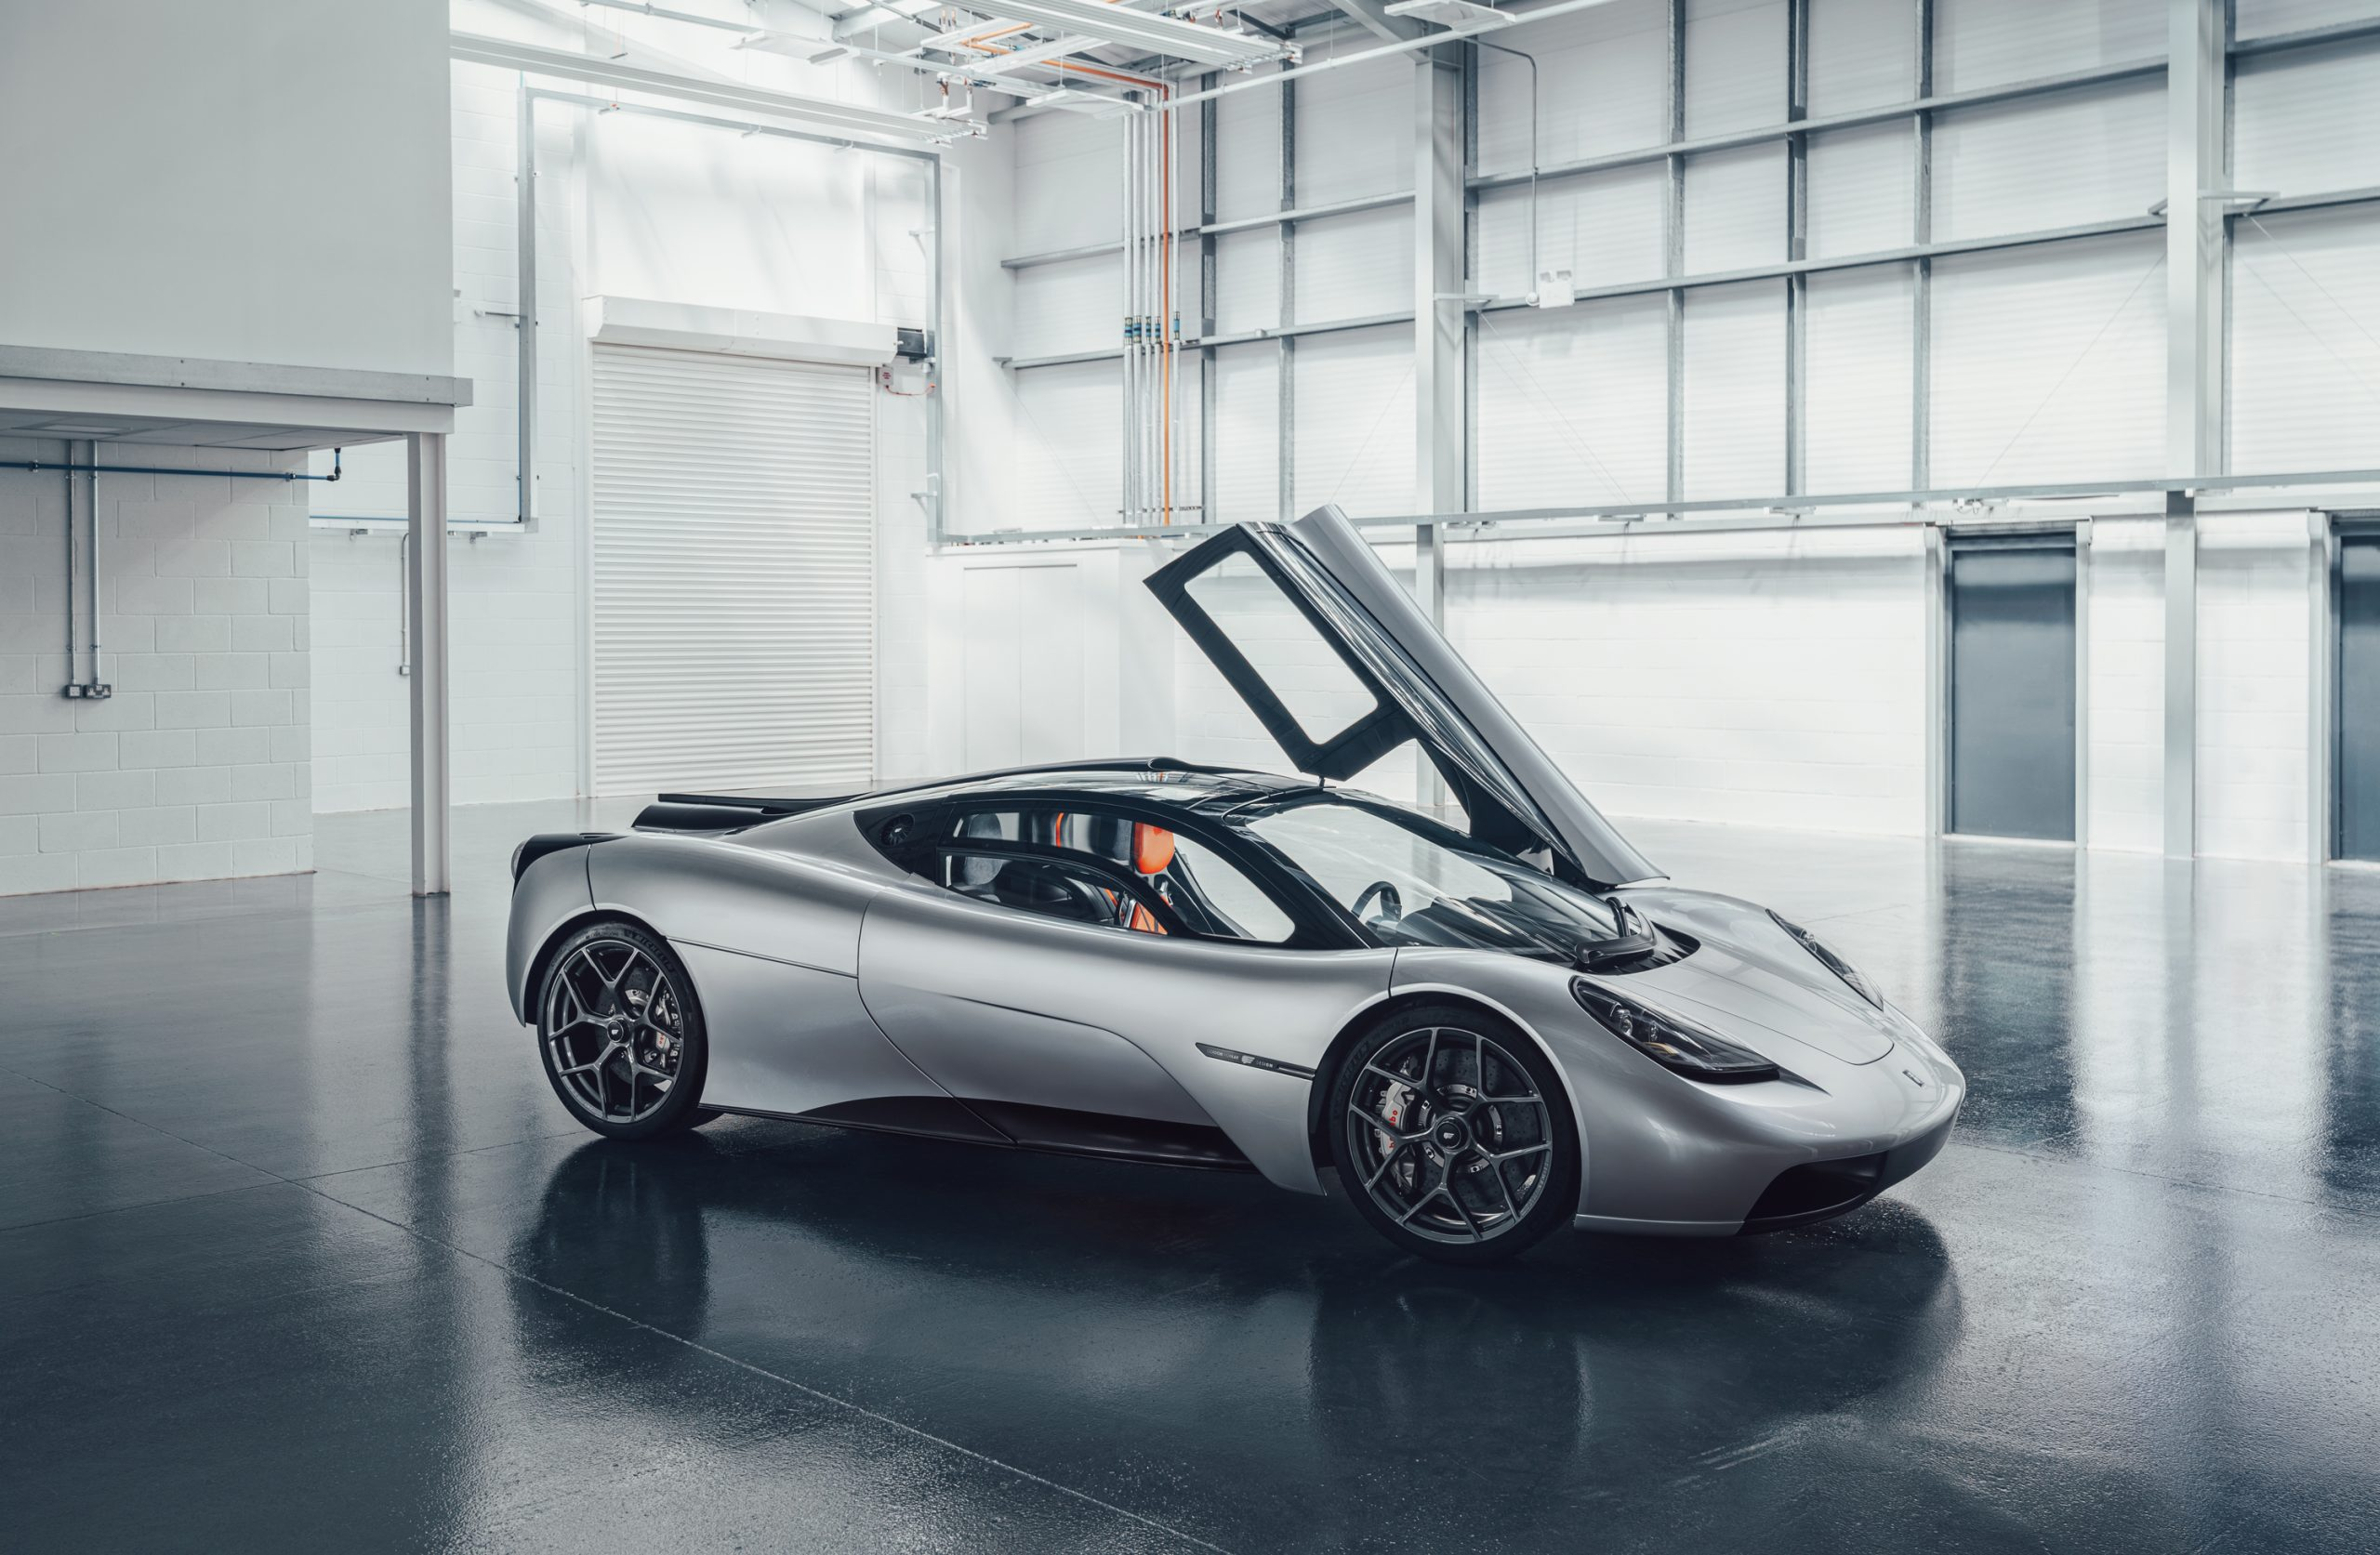 Revealed: Gordon Murray's T.50 hypercar is an ode to the naturally aspirated V-12